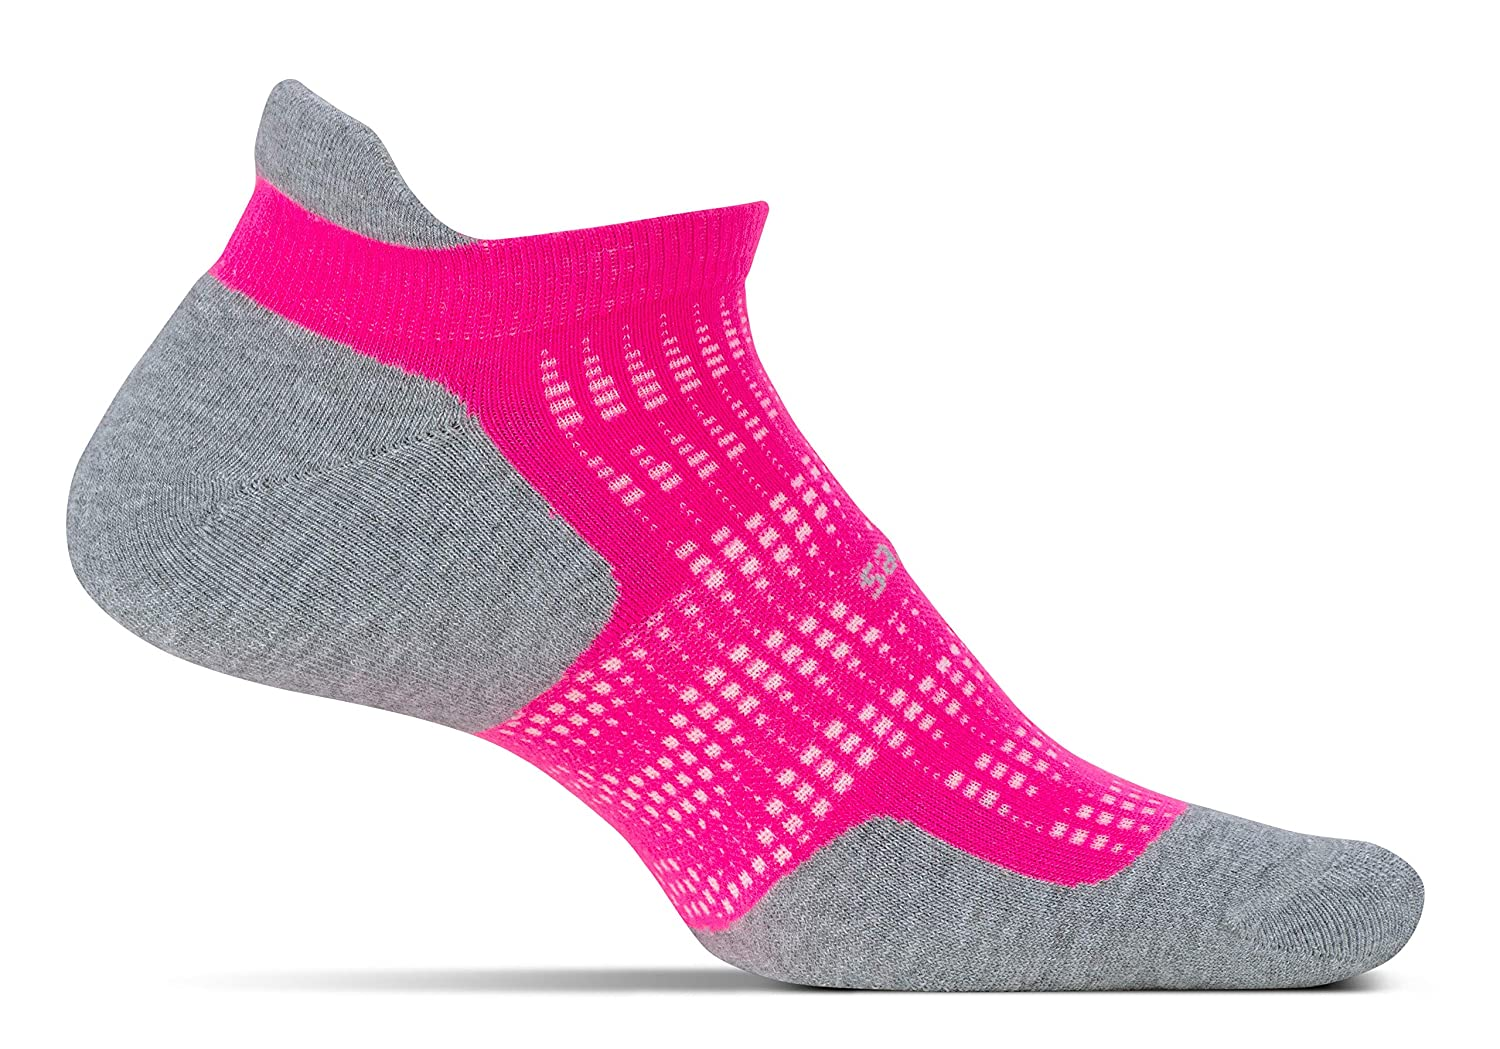 Feetures - High Performance Cushion - No Show Tab - Athletic Running Socks for Men and Women Feetures! Men' s Socks FA50 trail running socks compression socks